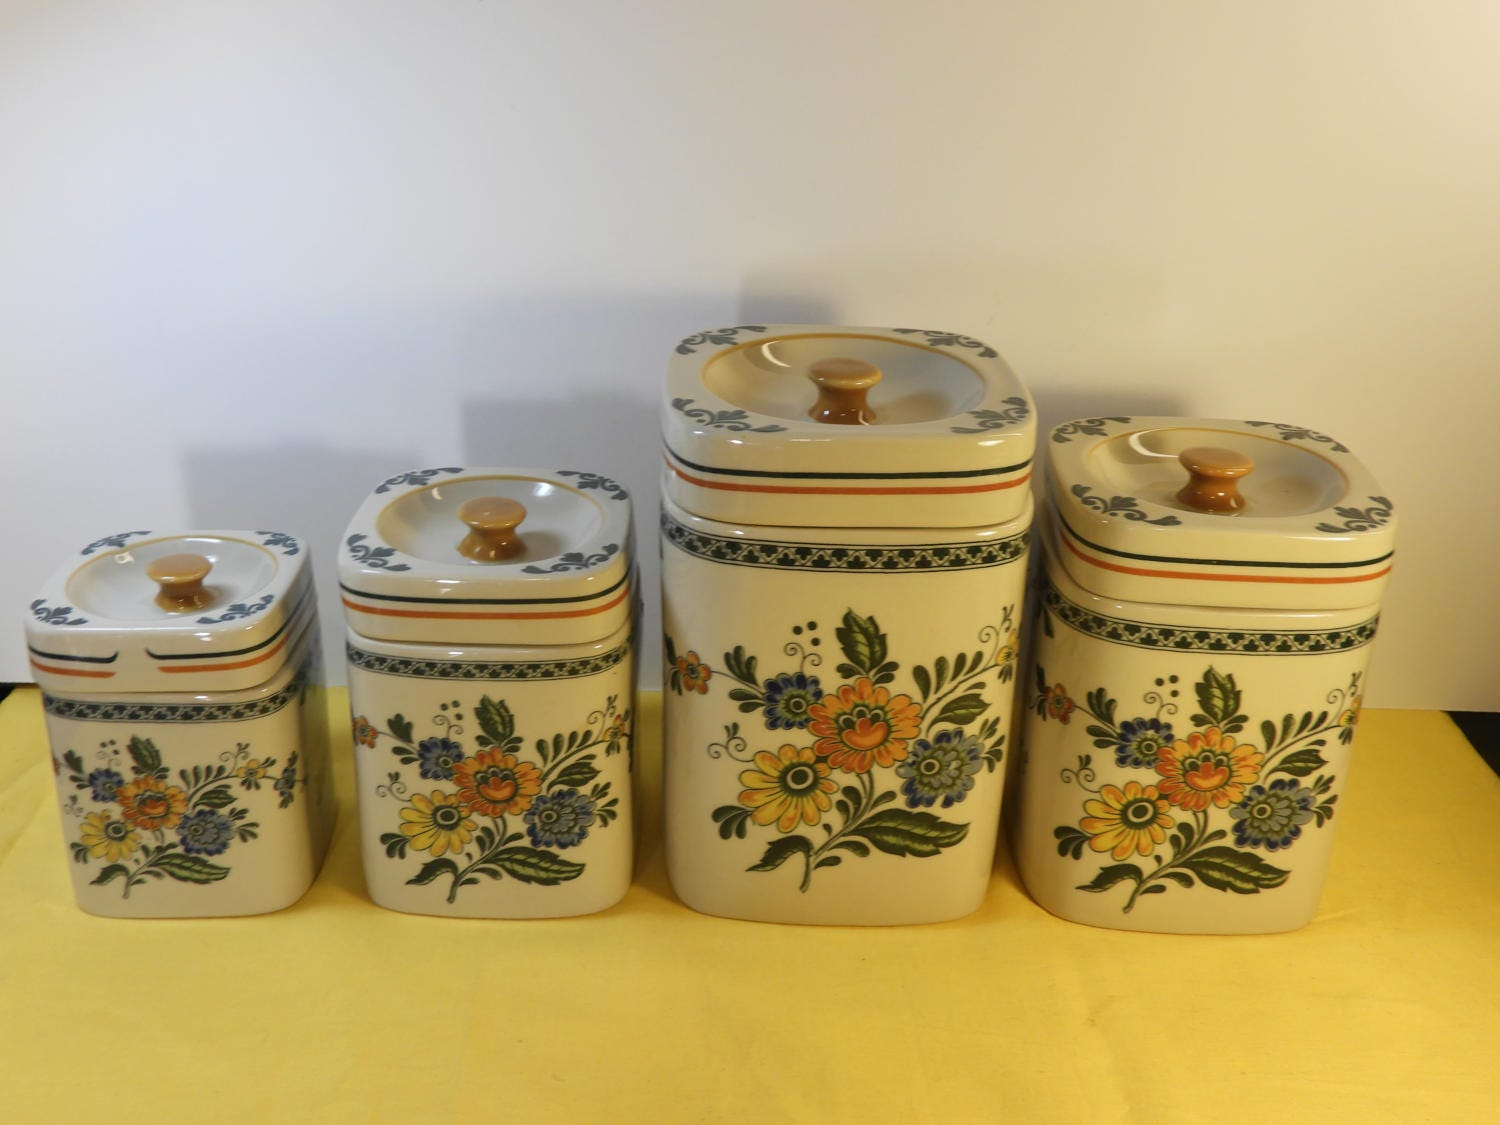 decorative kitchen canister sets vintage stoneware canister set 4 yellow green decorative kitchen canister jar set 4 korea 3926